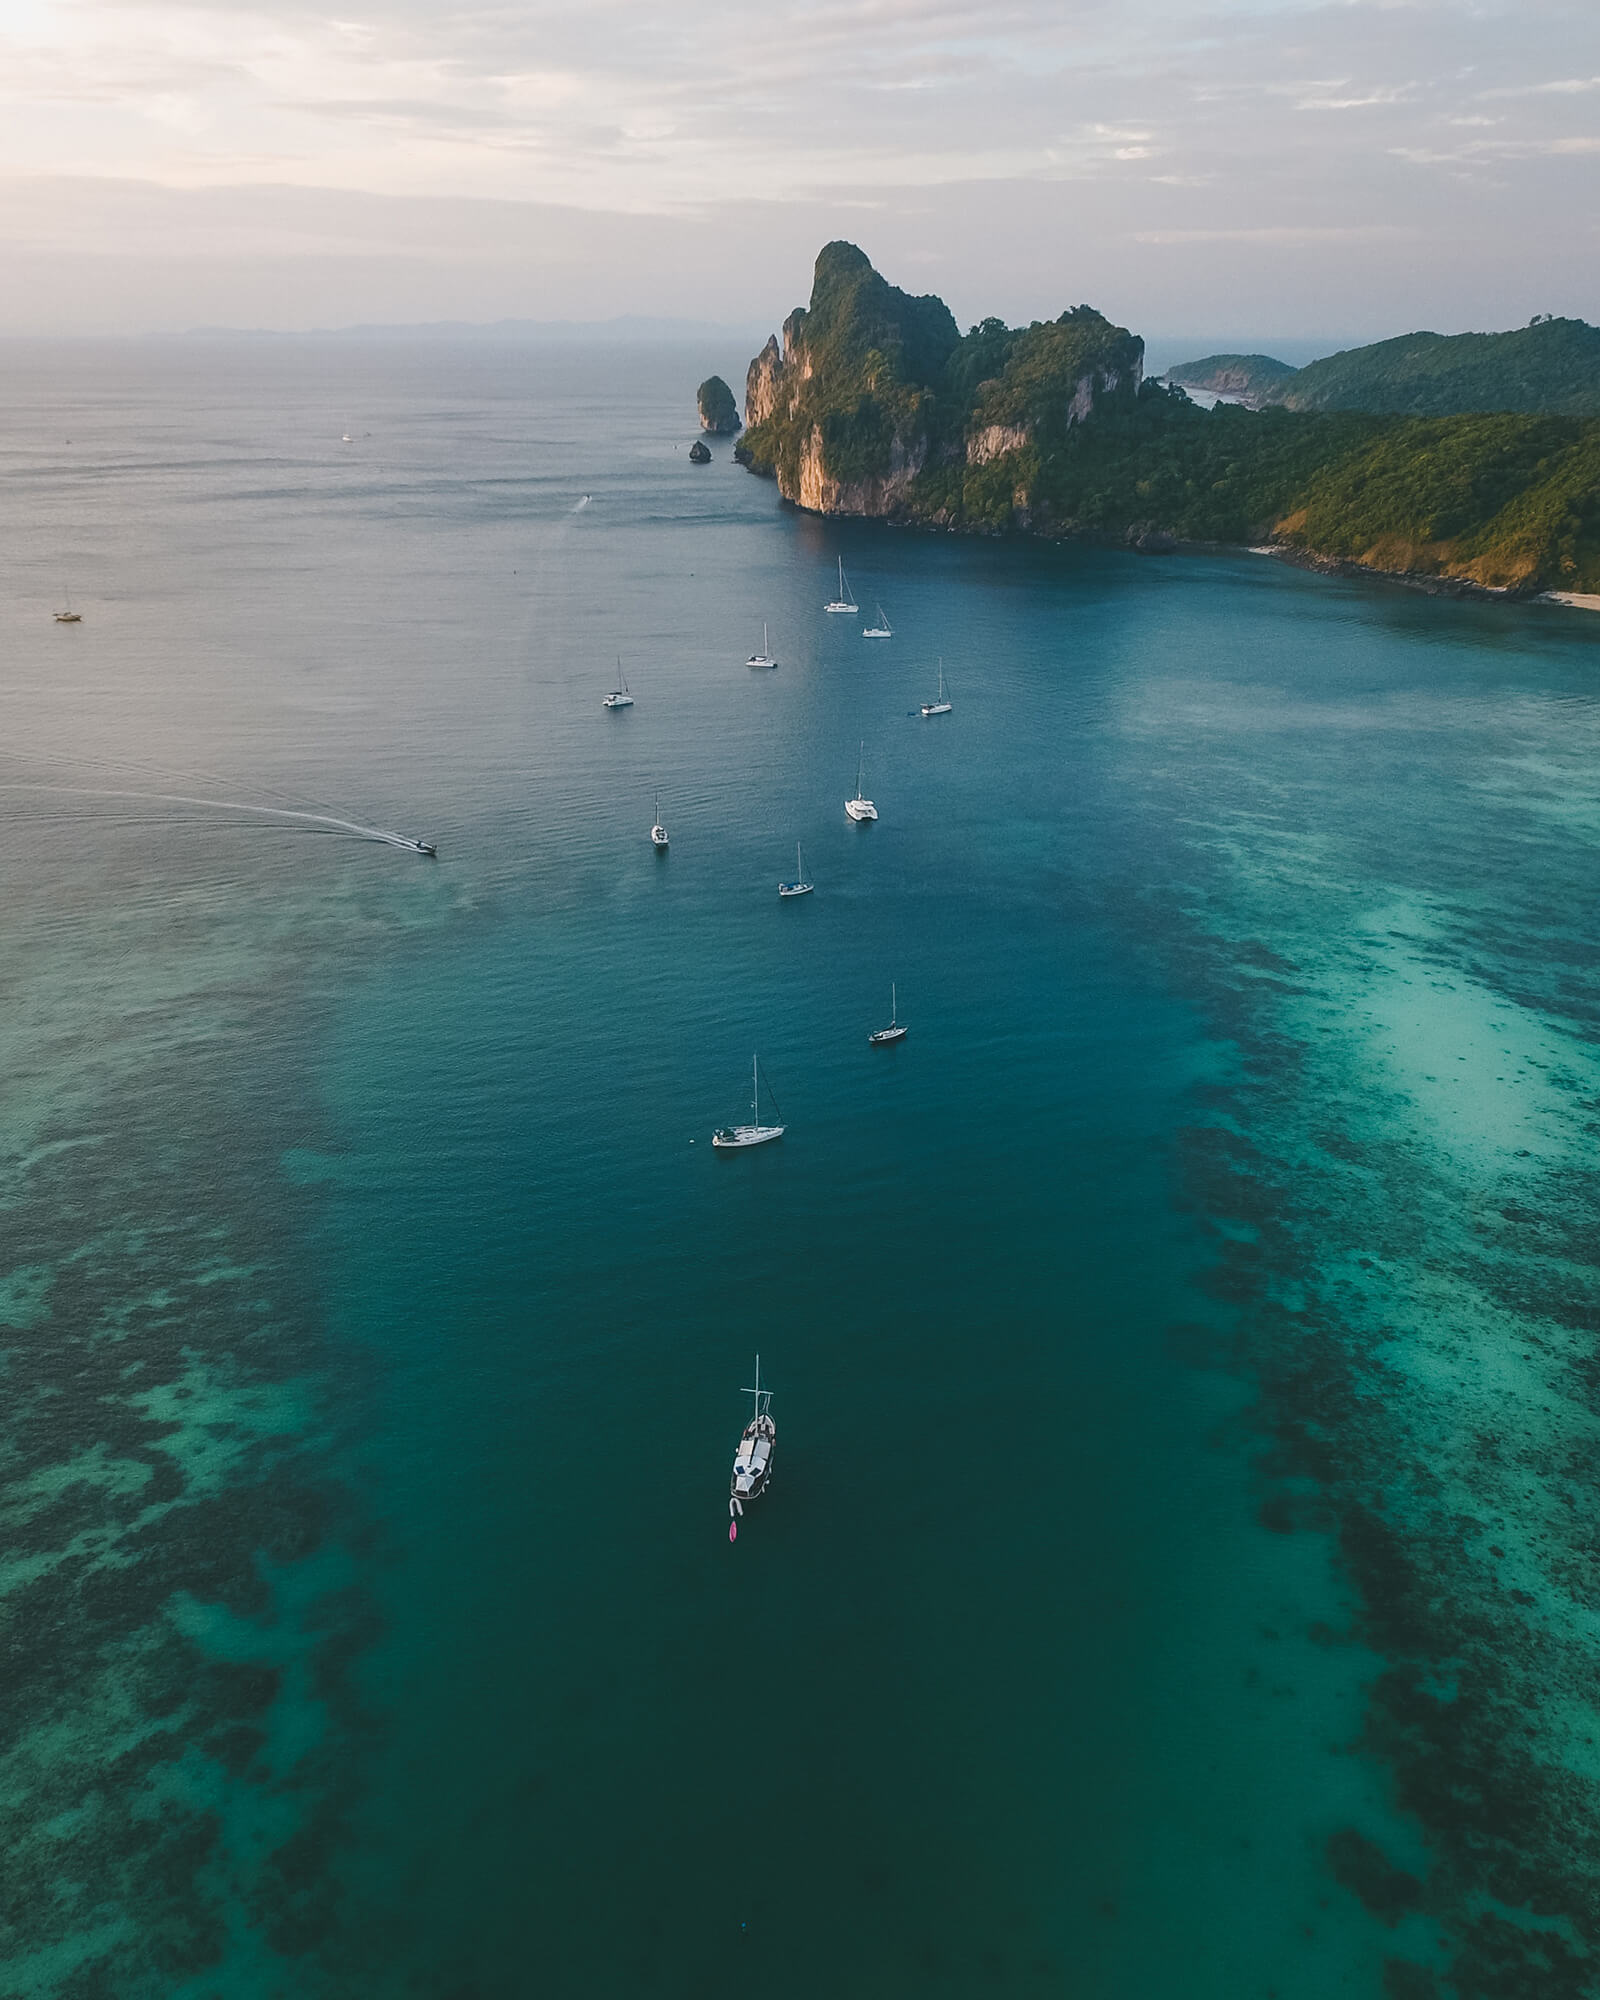 Aerial drone view of the Ko Phi Phi in southern Thailand, one of the most popular and gorgeous destinations in Thailand